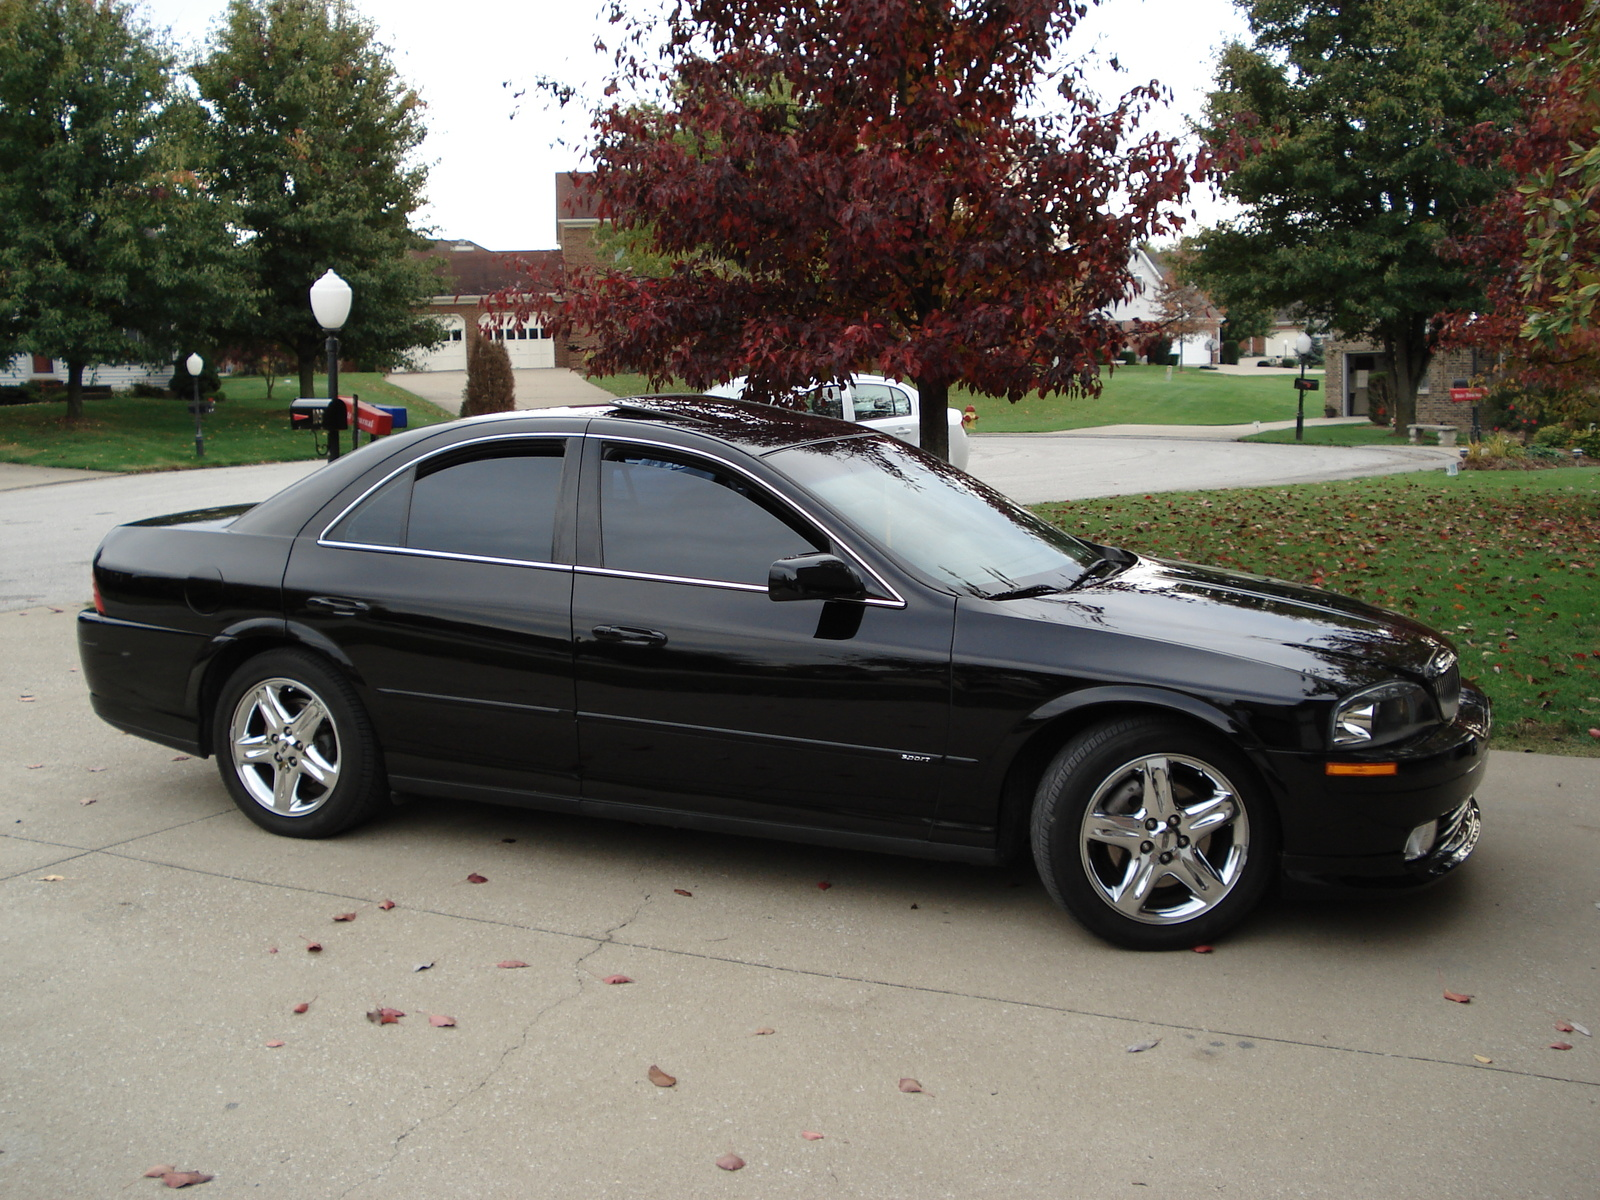 Lincoln Ls V Sport Pic on 2002 Lincoln Ls V8 Red Picture